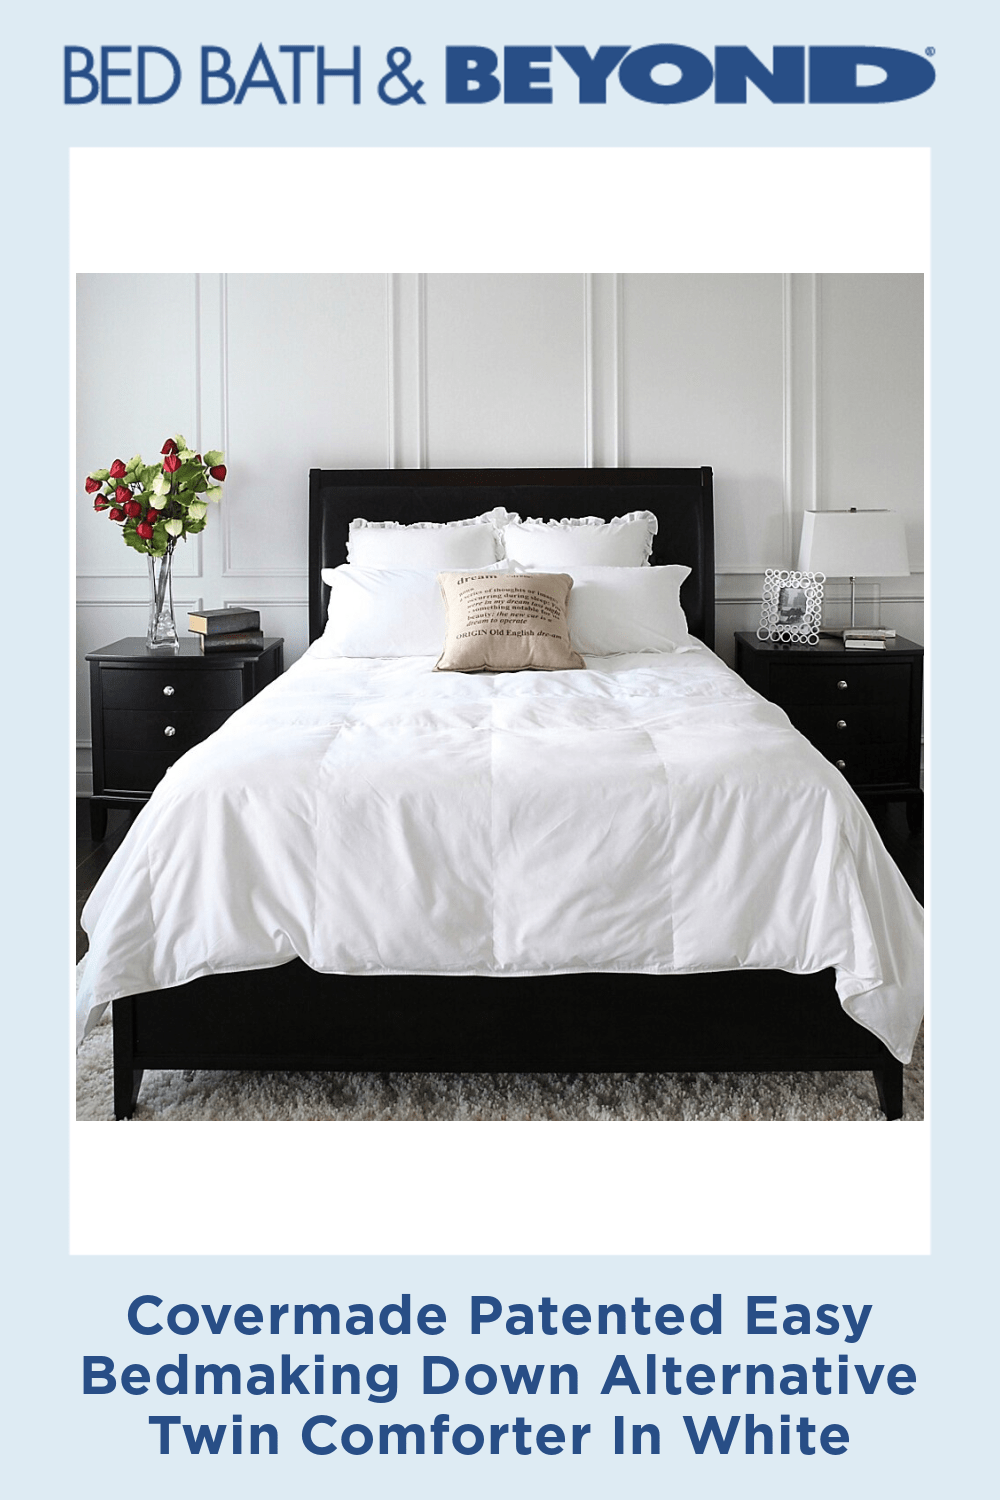 Photo of Covermade Patented Easy Bedmaking Down Alternative Twin Comforter In White